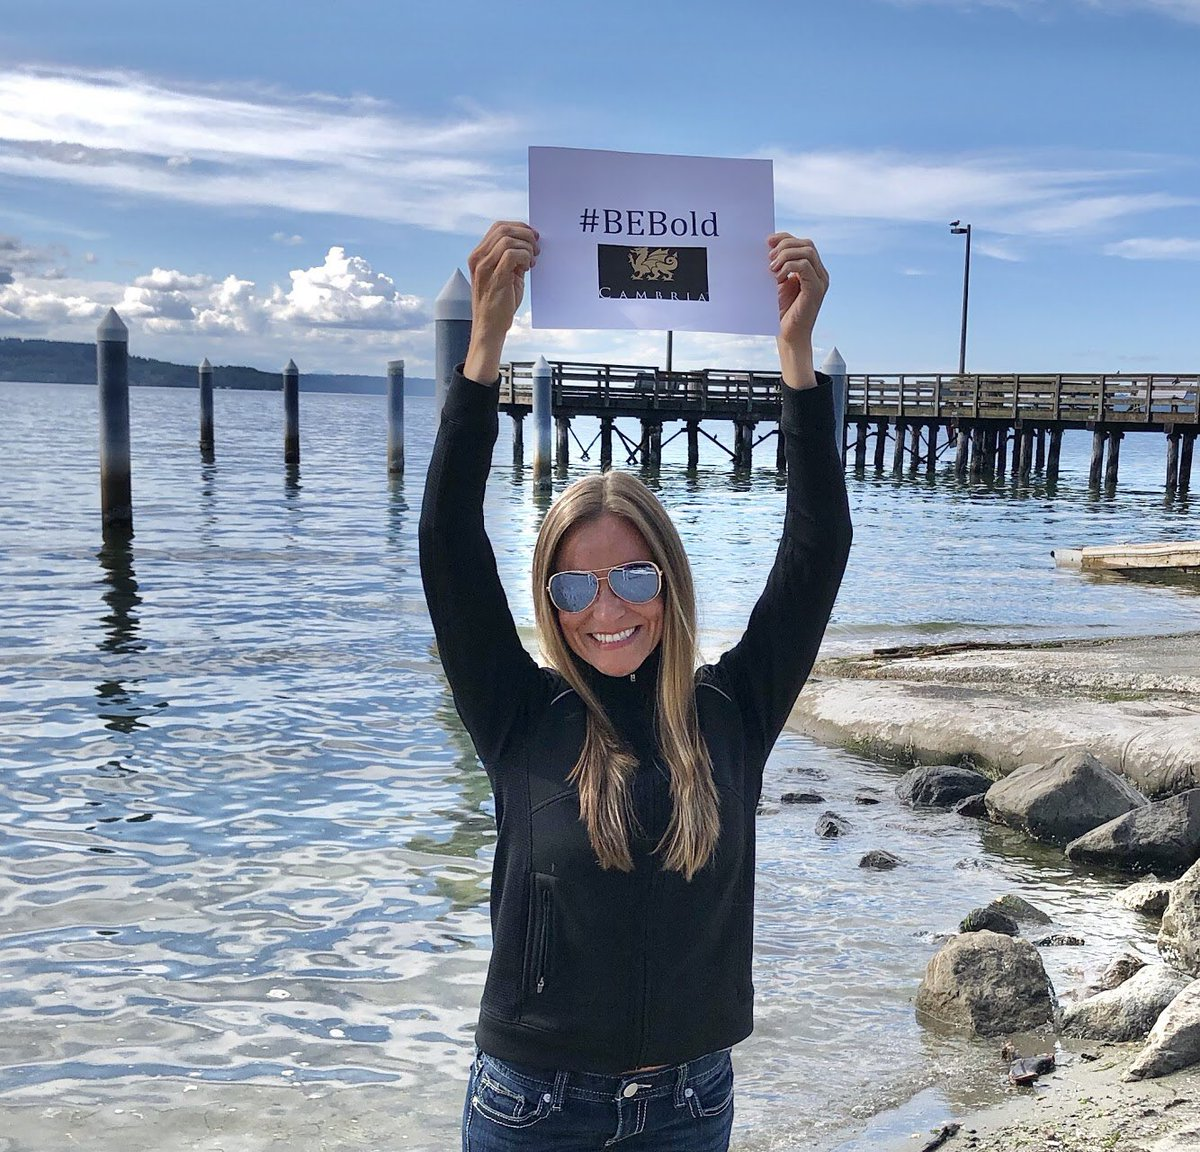 So proud to be a Dragon and support my Pacific Northwest Cambria team! With #Cambria you can #BE who you want to #BE! Find your inspiration at http://www.cambriausa.com  #WeAreCambria @cambriasurfacespic.twitter.com/Eye4vJtd6r